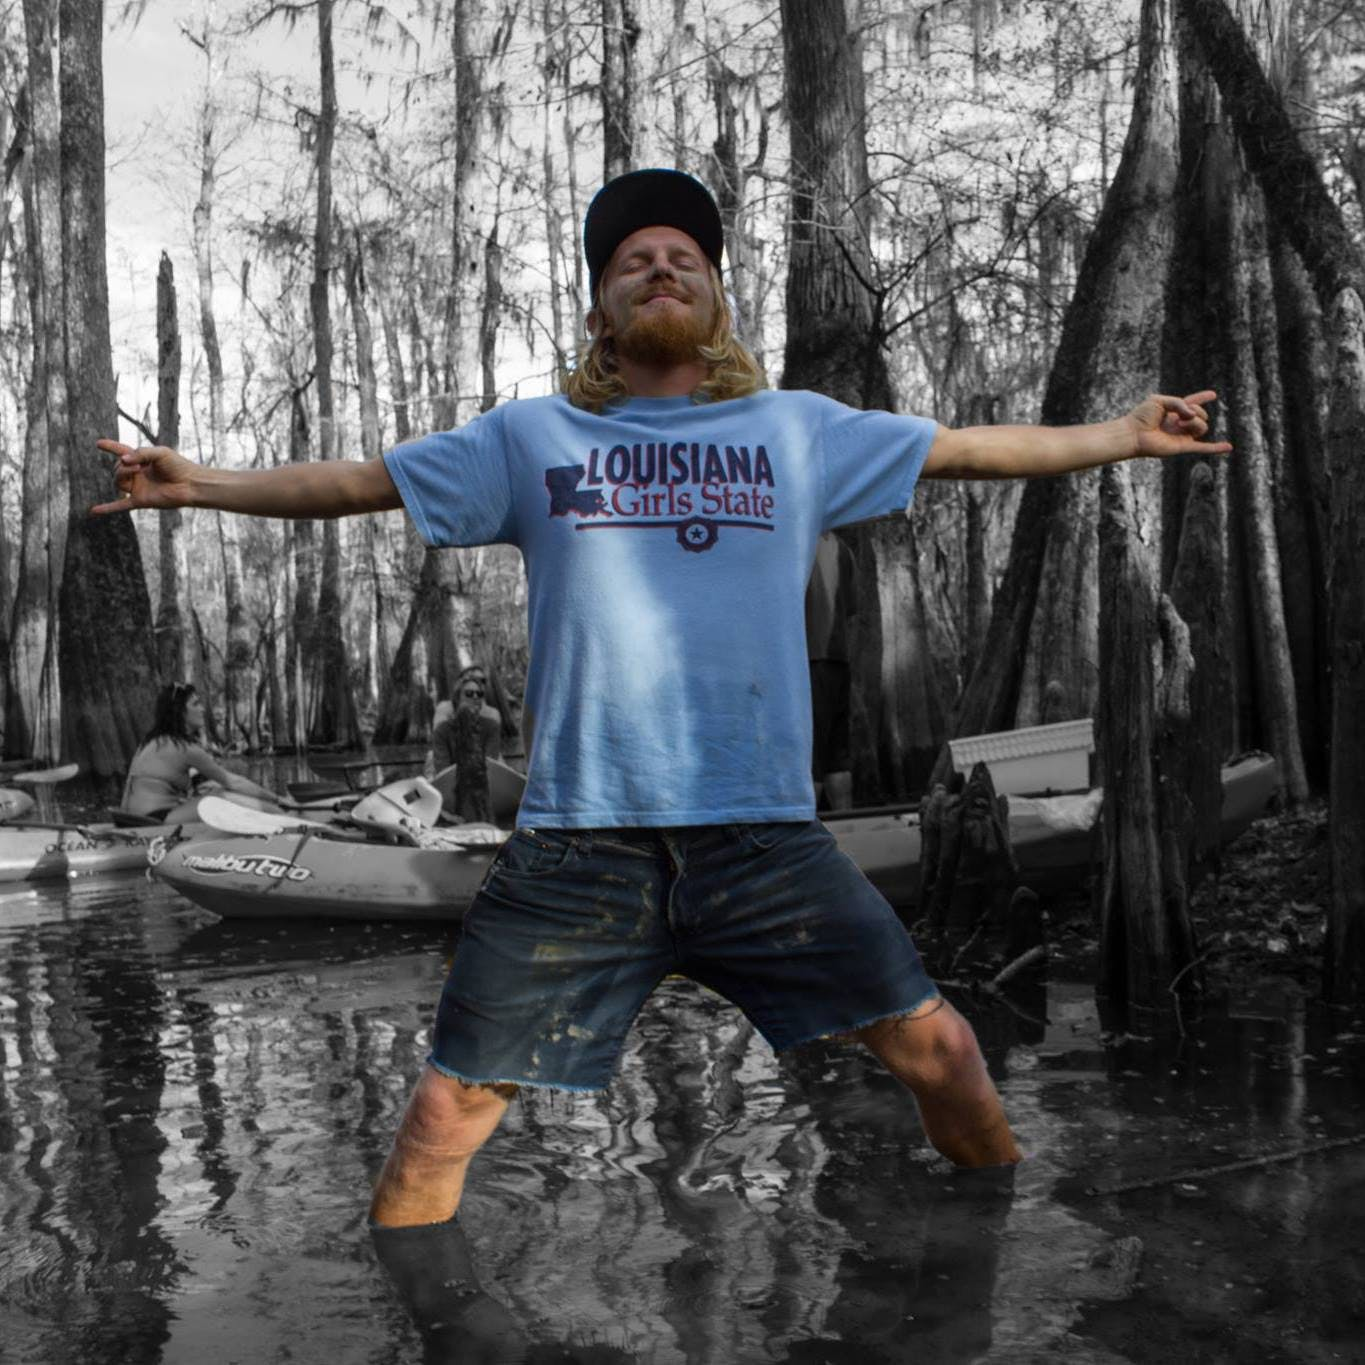 Jeff standing in the swamp